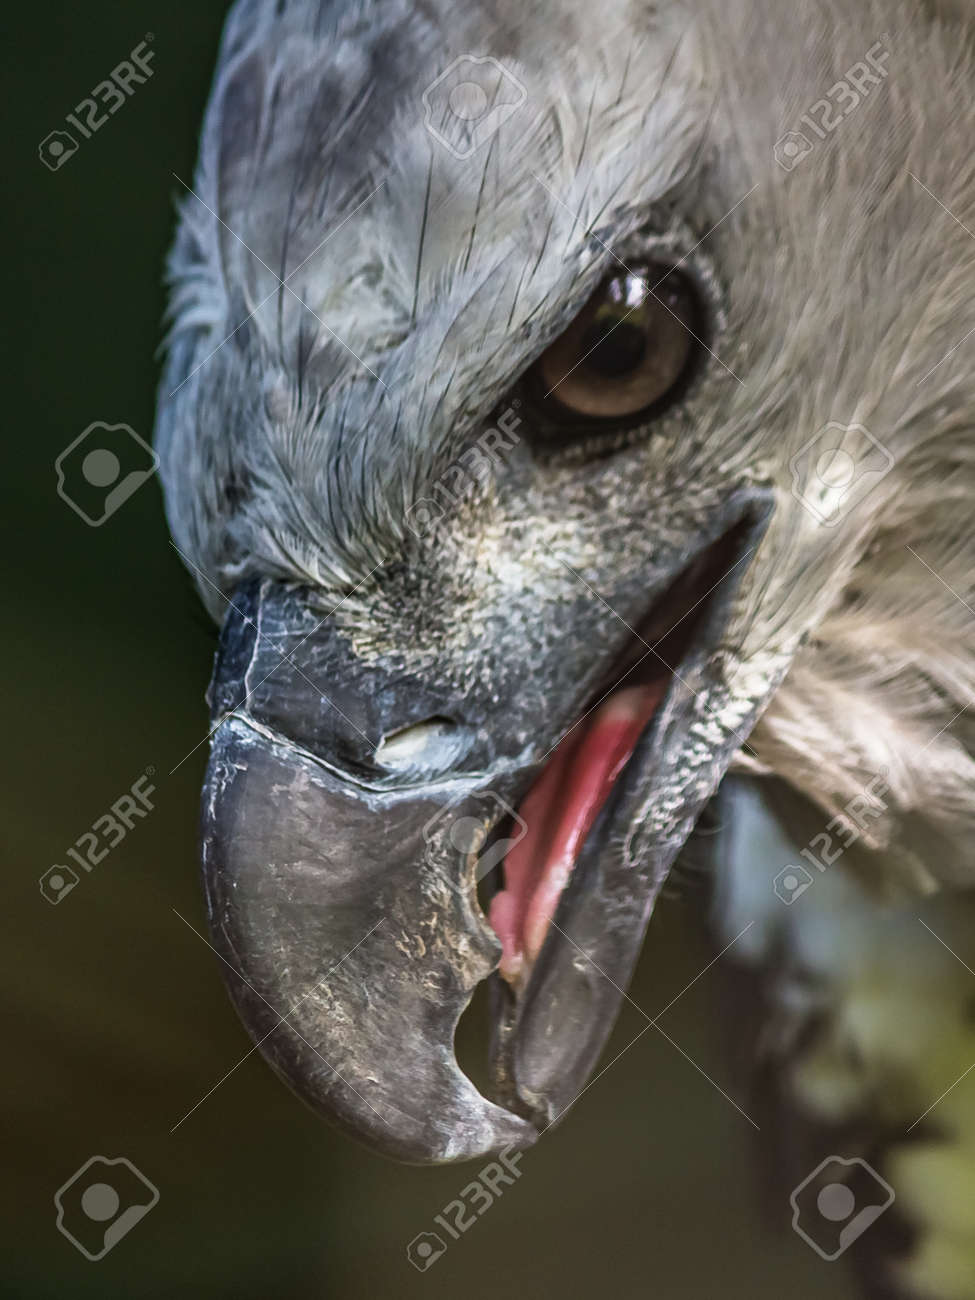 Close-up profile portrait of a harpy eagle. The American harpy eagle (Harpia harpyja) lives in the tropical lowland rainforests of America. It's a Near Threatened species. - 170626905